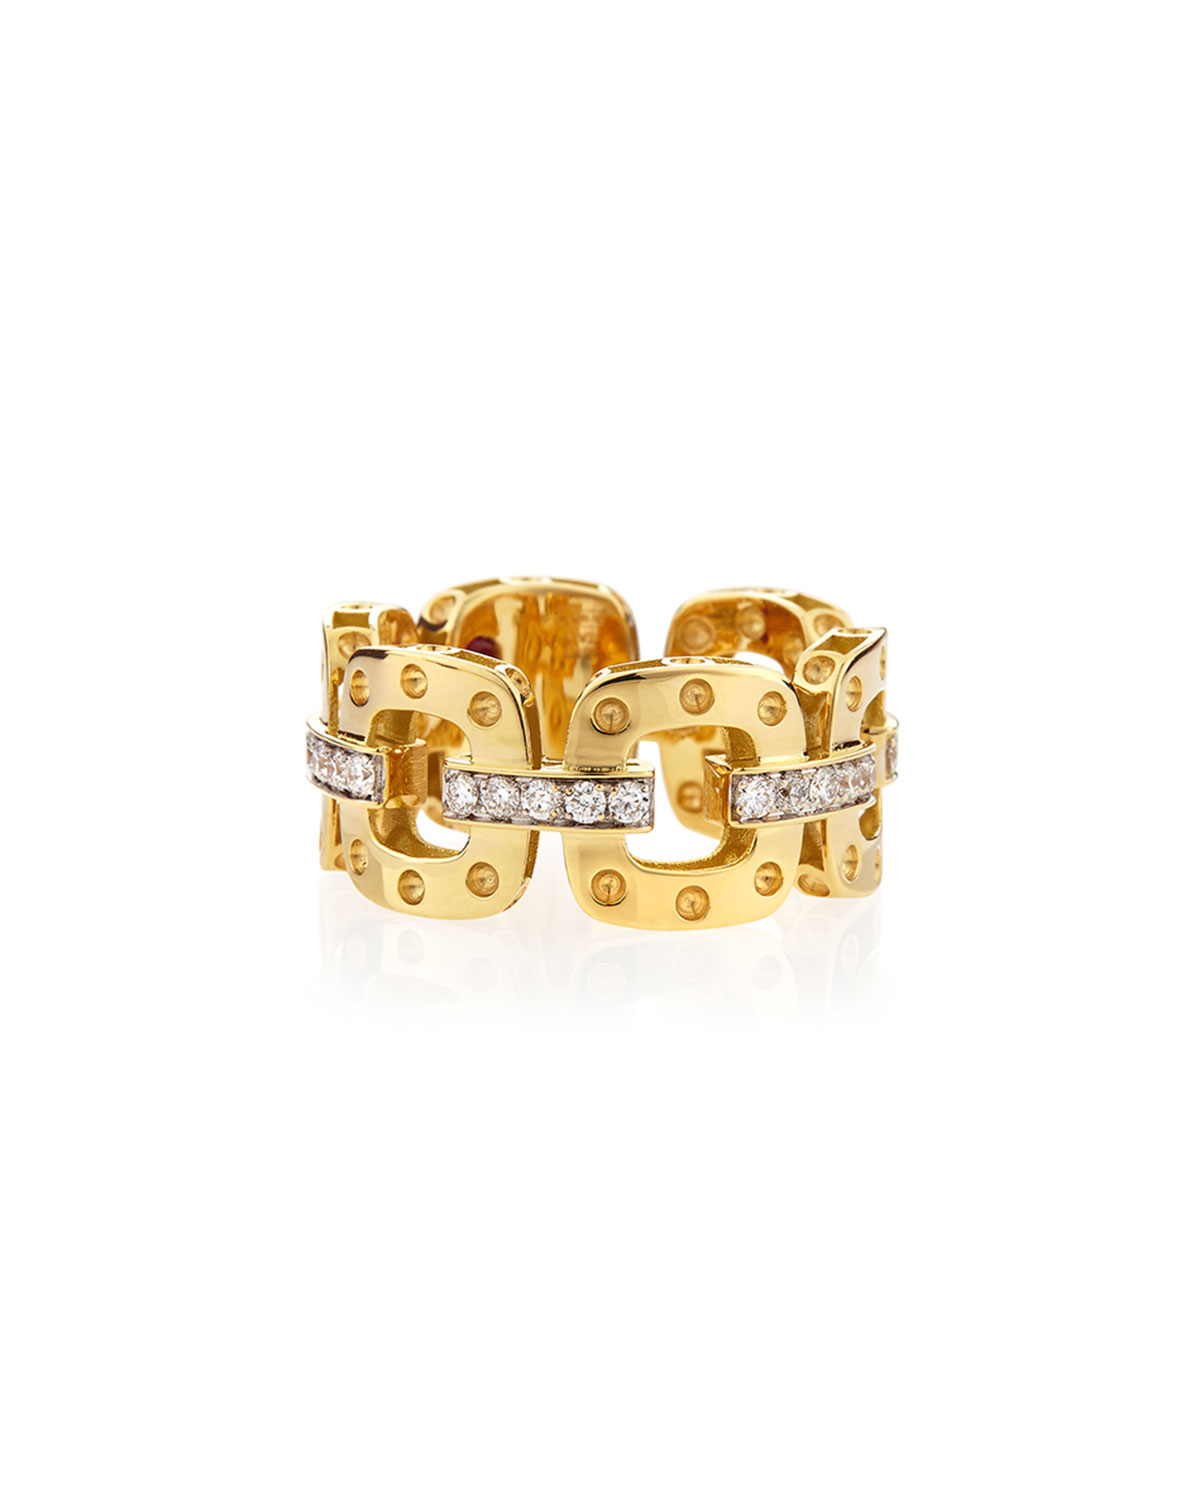 Roberto Coin 18k Yellow Gold Pois Moi Band Ring with Diamonds, Size 6.5